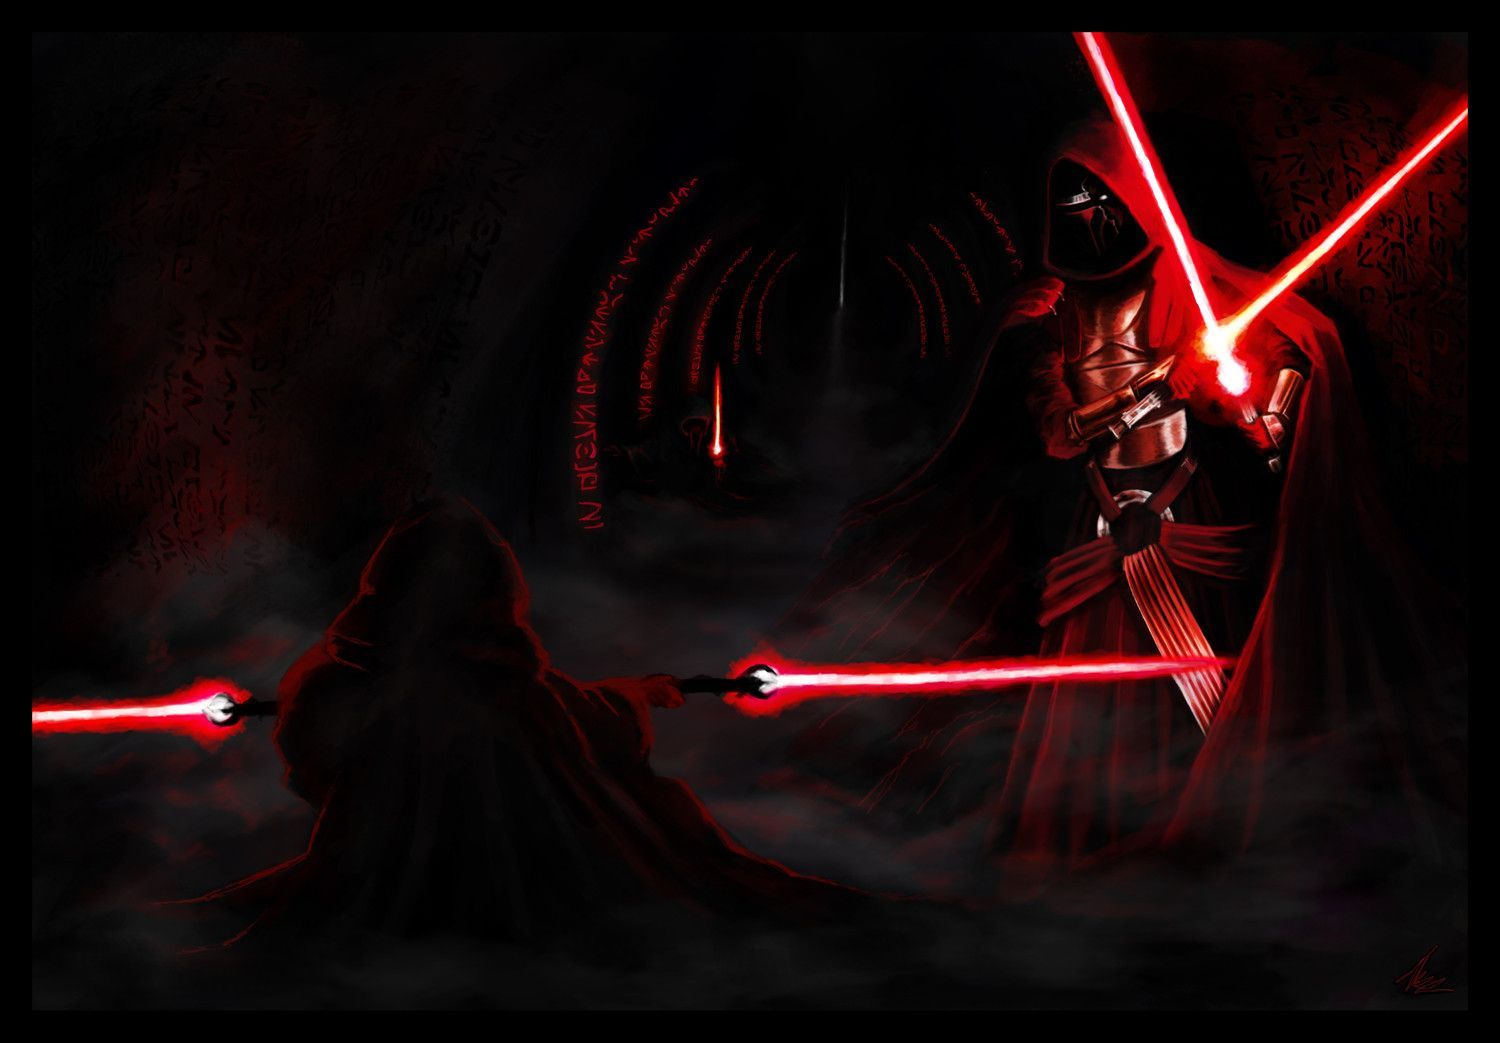 Sith Wallpapers - Wallpaper Cave